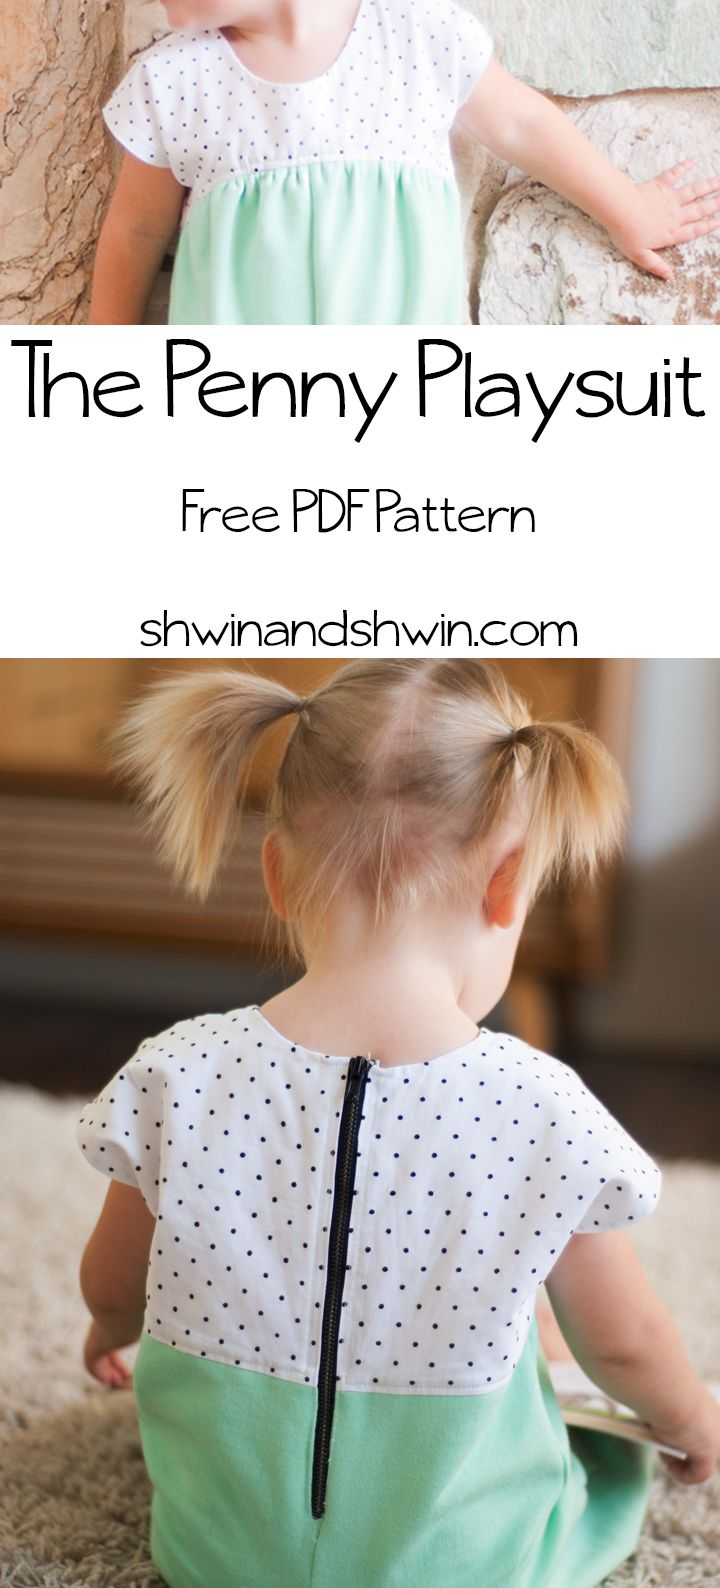 2322 best free sewing for children images on pinterest sewing the penny playsuit free pdf pattern shwinshwin baby clothes patternsdress patternssewing jeuxipadfo Images